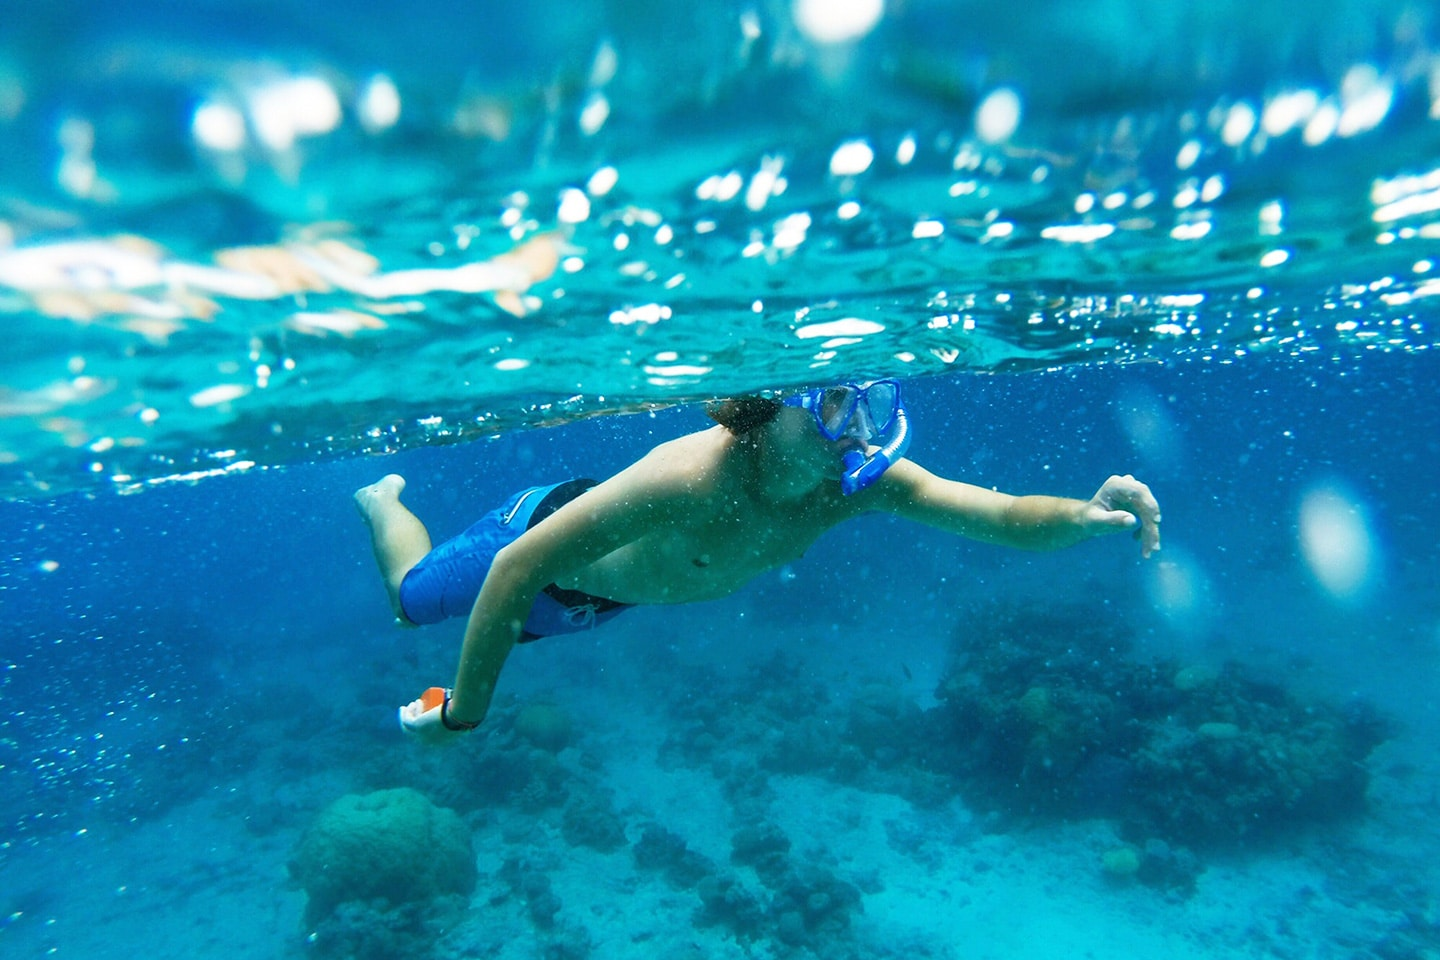 Boy is snorkeling wearing mask and snorkel